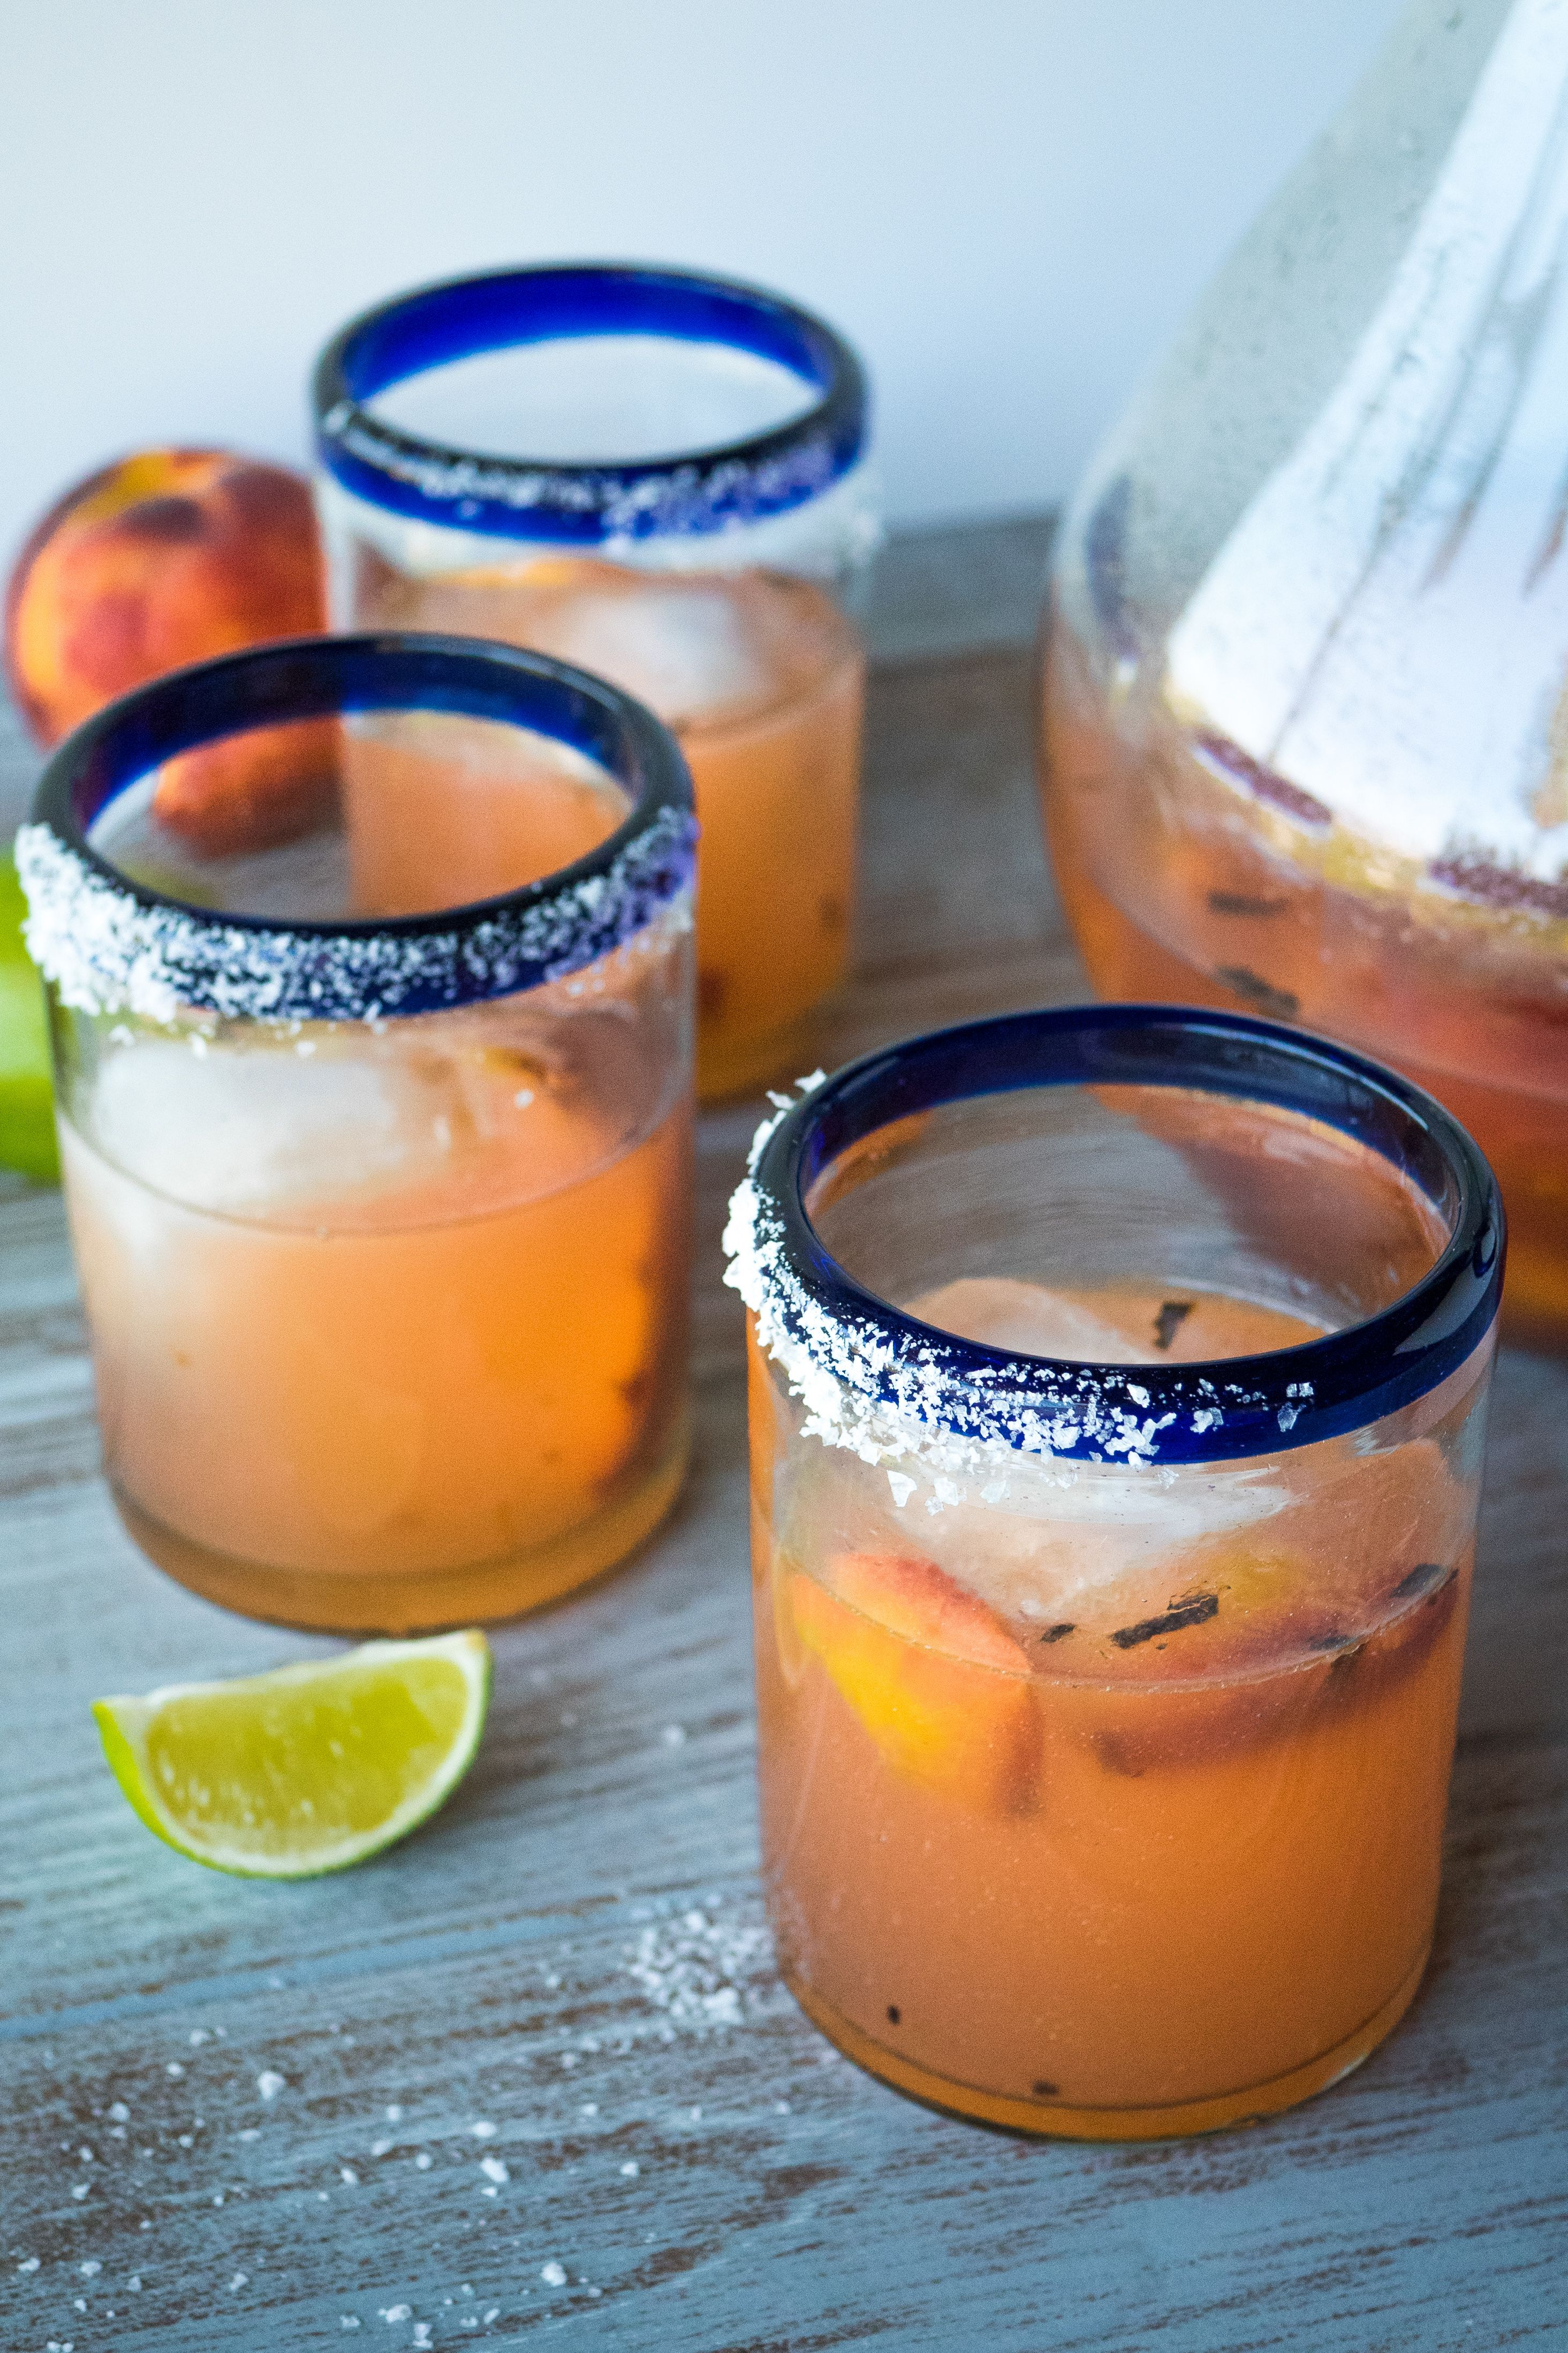 Three grilled peach pitcher margaritas on a table with limes and a pitcher.